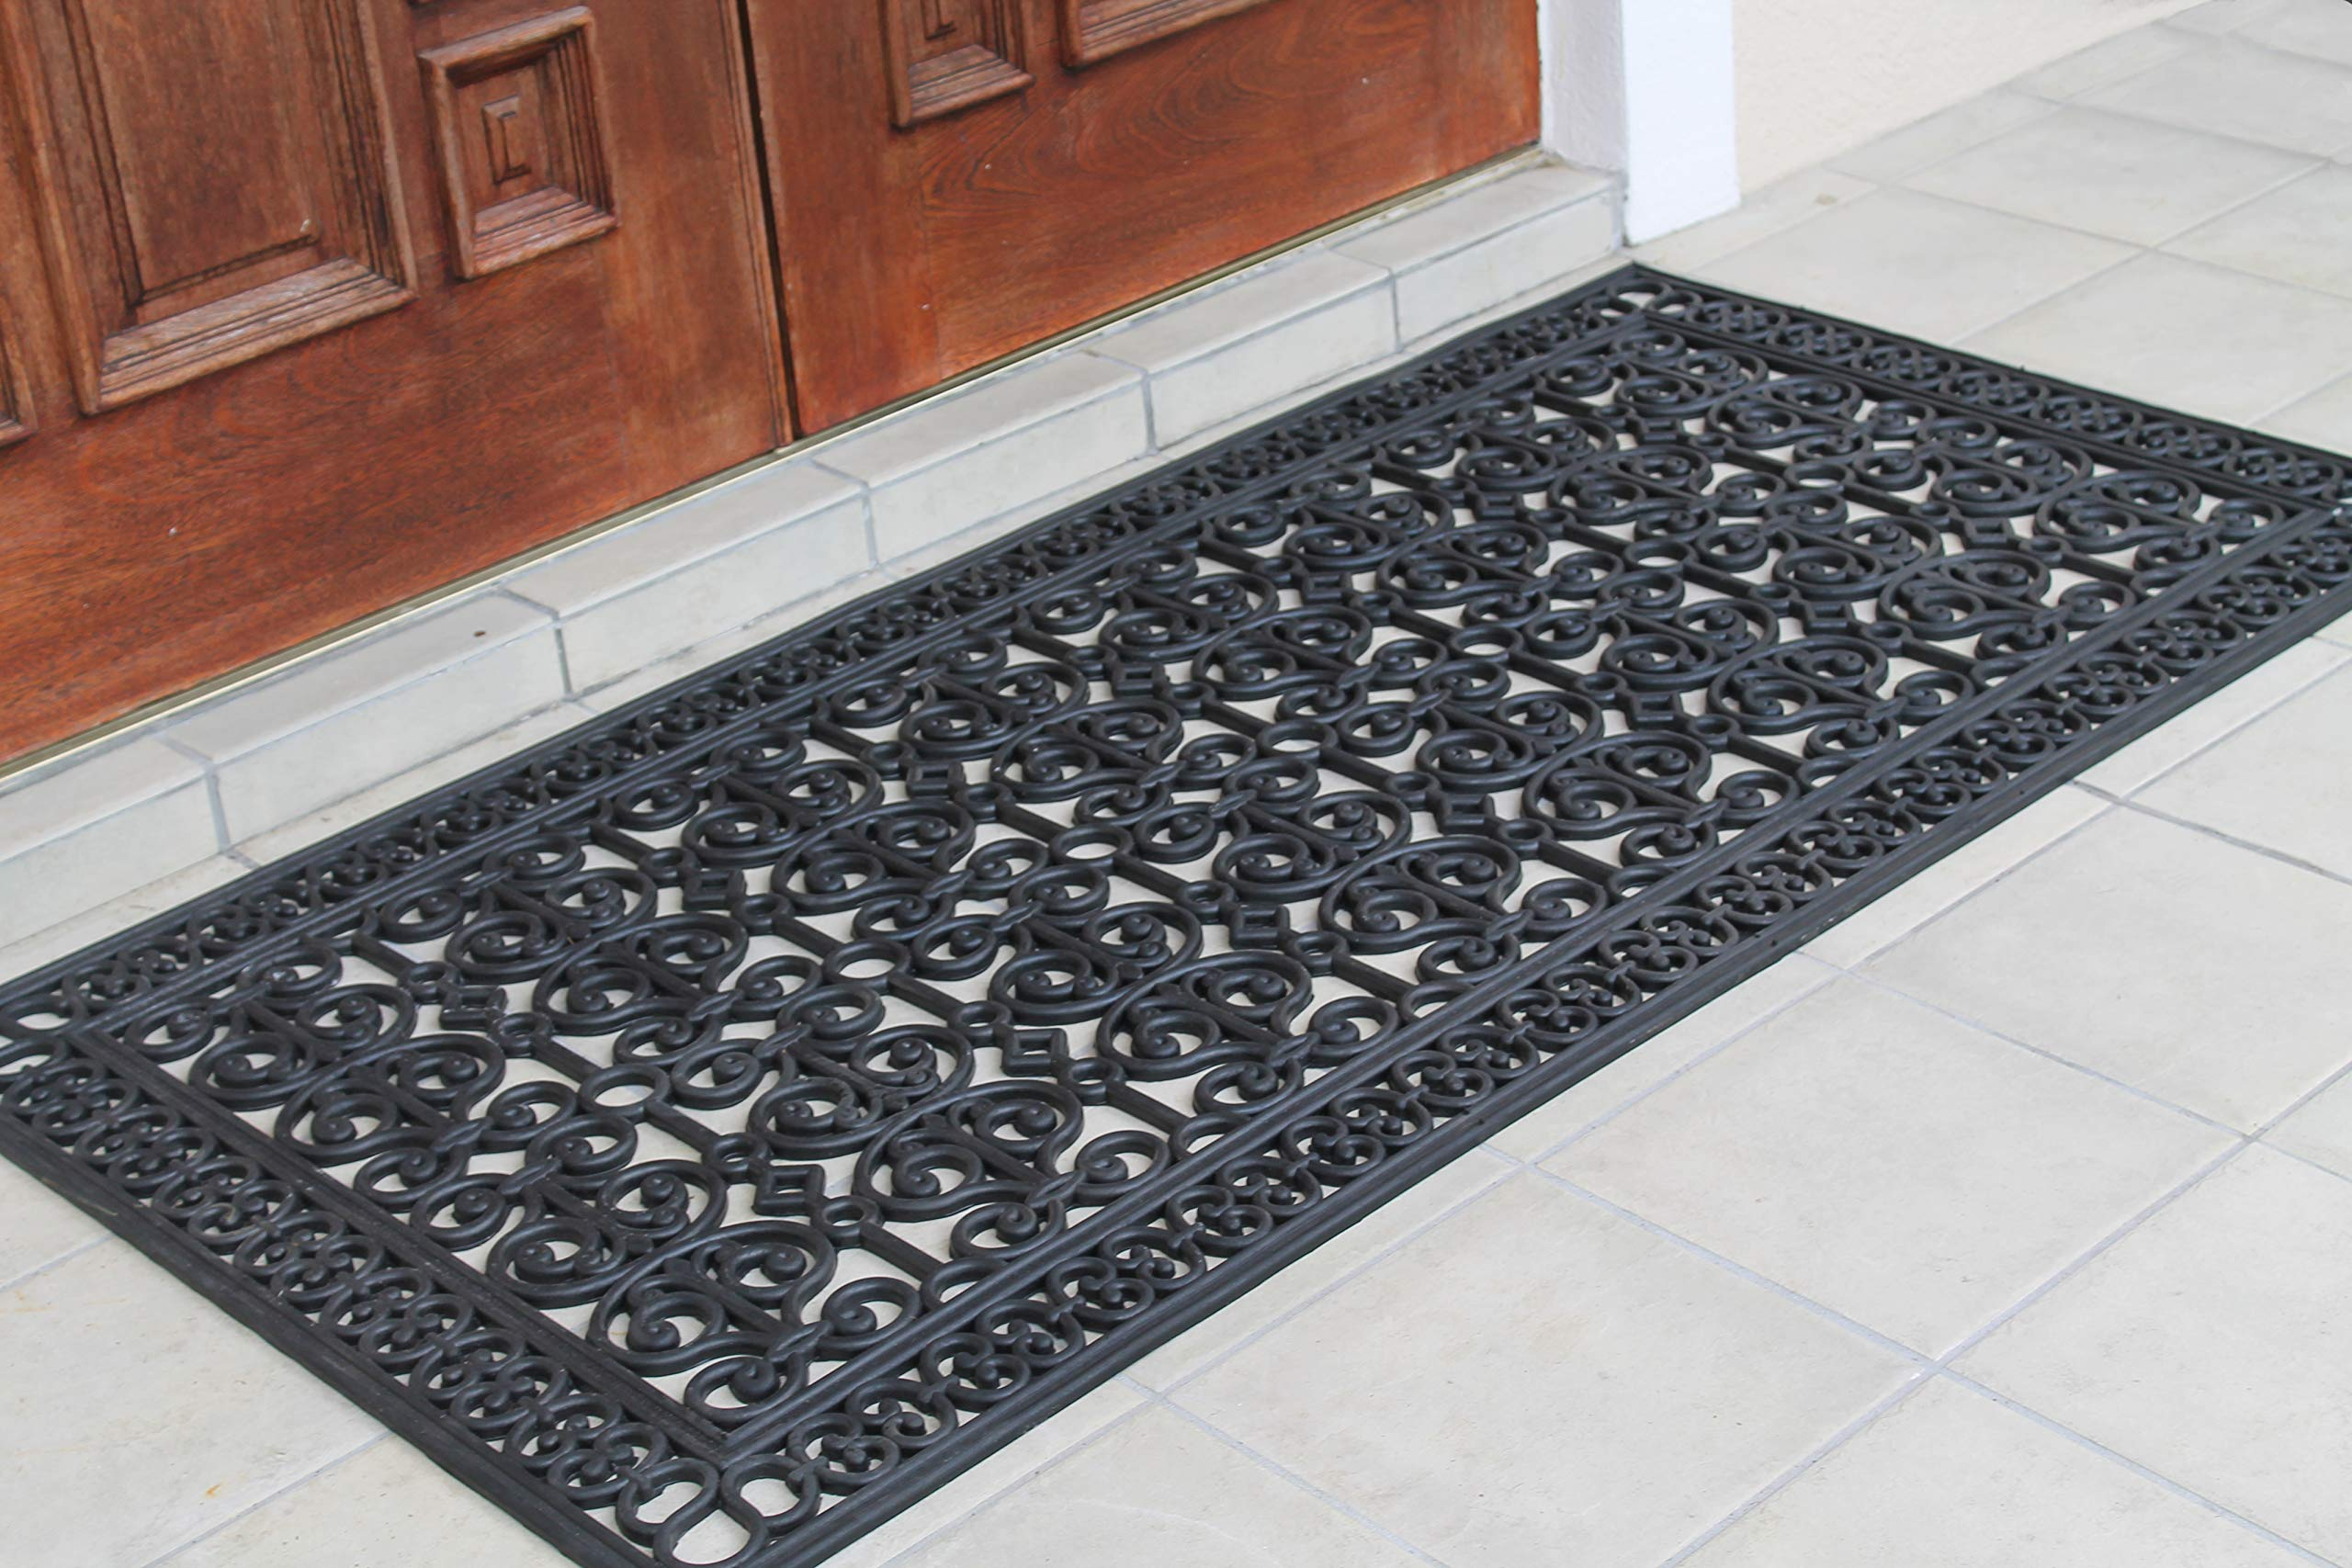 A1 Home Collections A1HCCL68 Doormat A1HC First Impression Rubber Paisley, Beautifully Hand Finished,Thick, 36X72, Black Estate 36'' X 72'' by A1 Home Collections (Image #3)